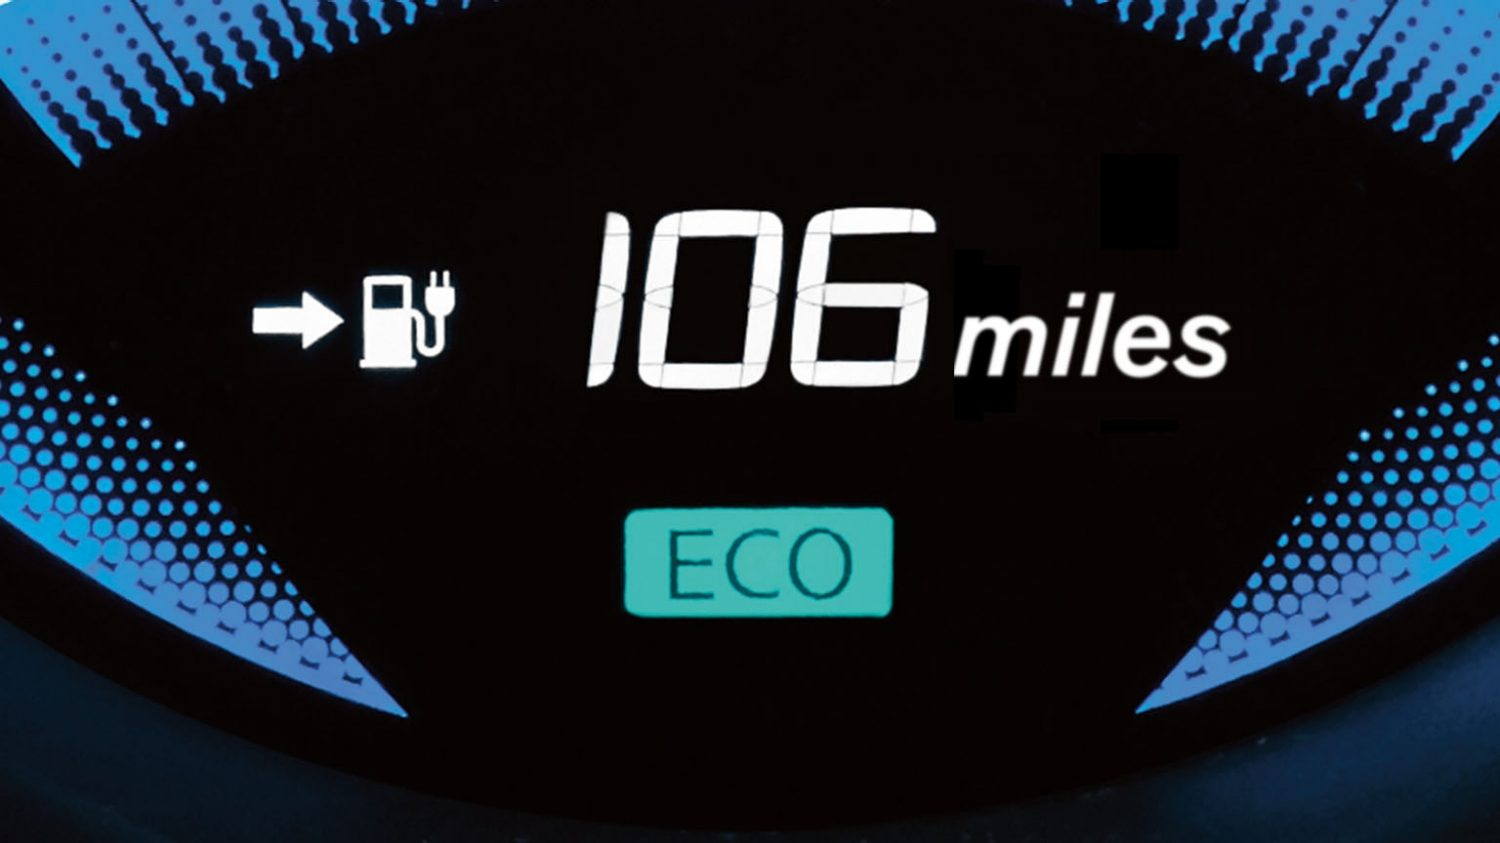 Van | Nissan e-NV200 | Battery charge display